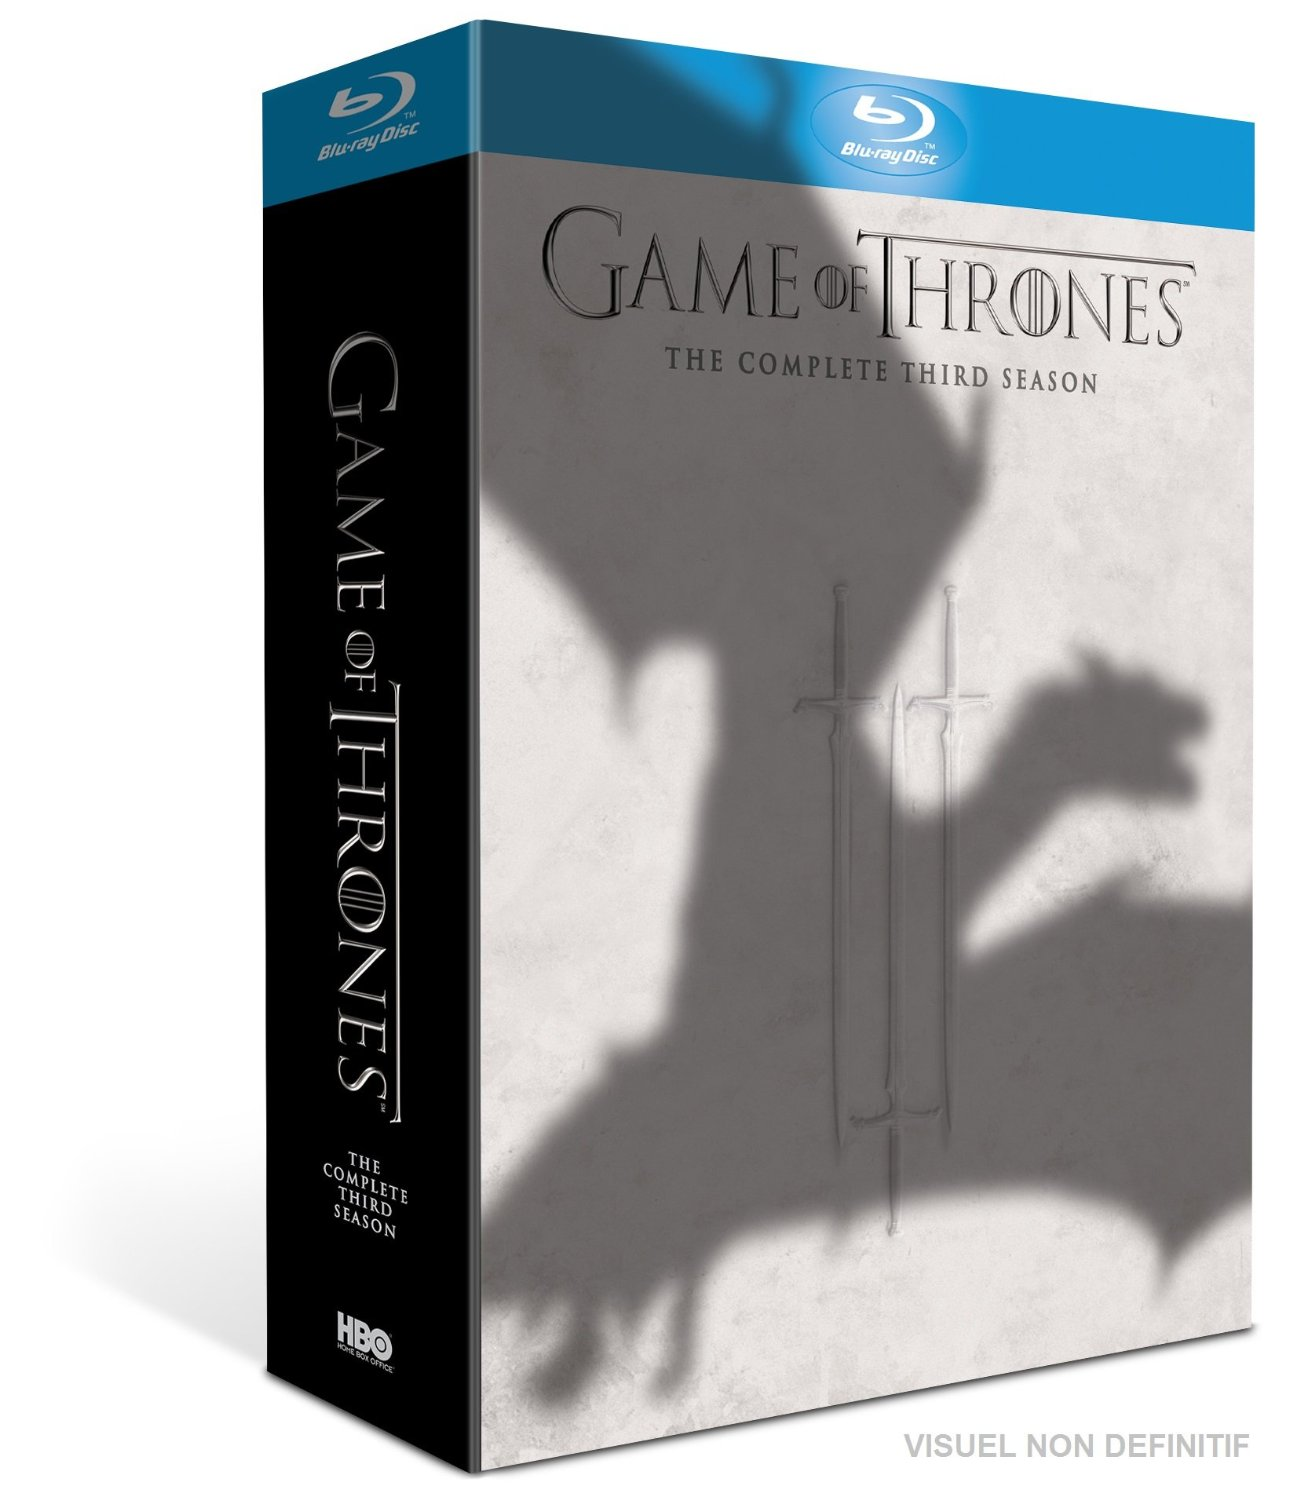 Coffret Blu Ray Game of Thrones Game of Thrones Blu-ray Saison